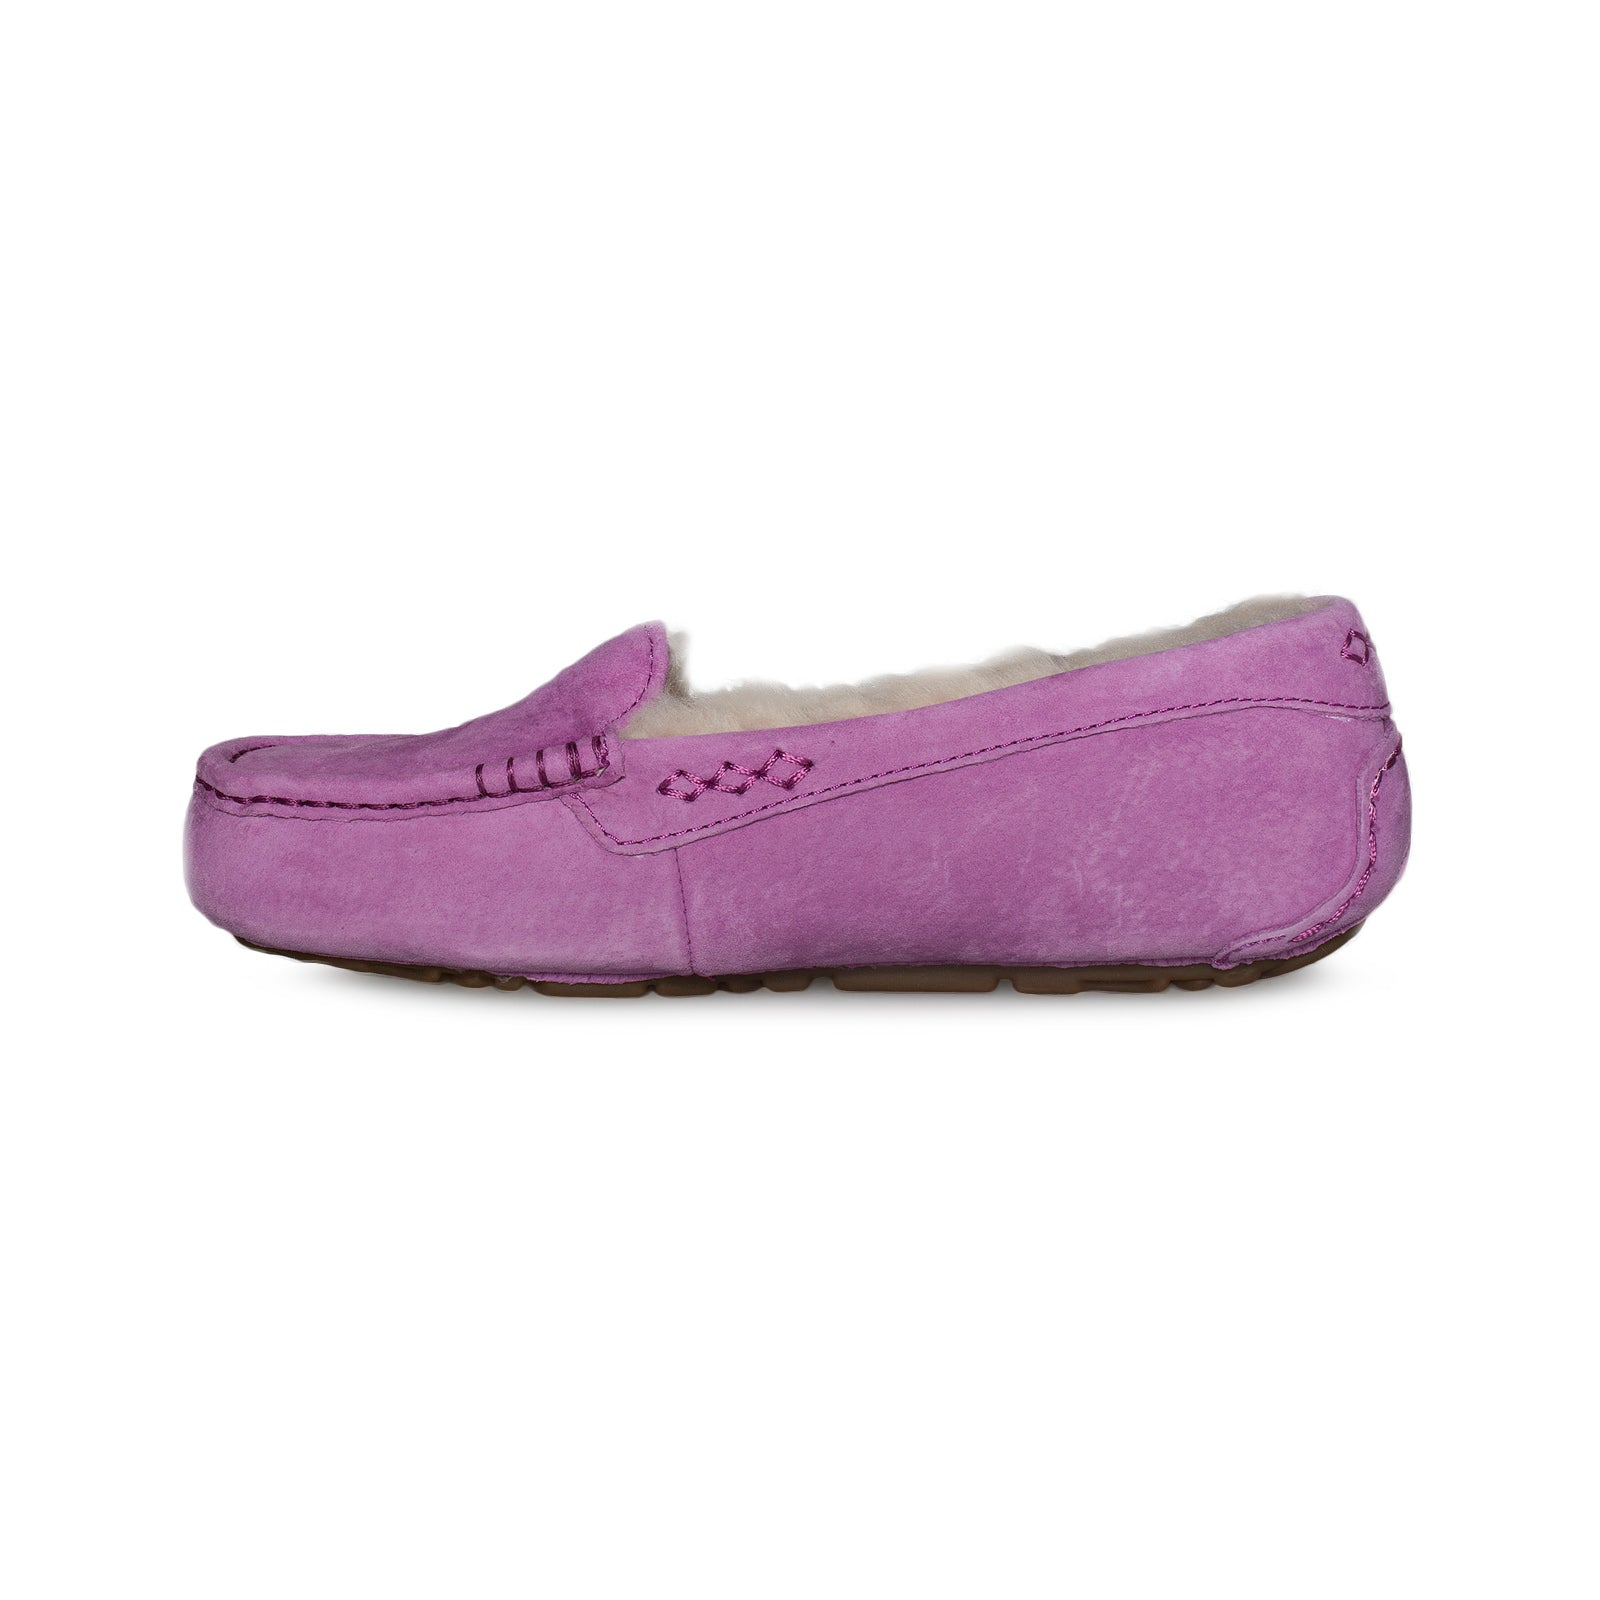 83f3abb127e Women's Slippers Tagged